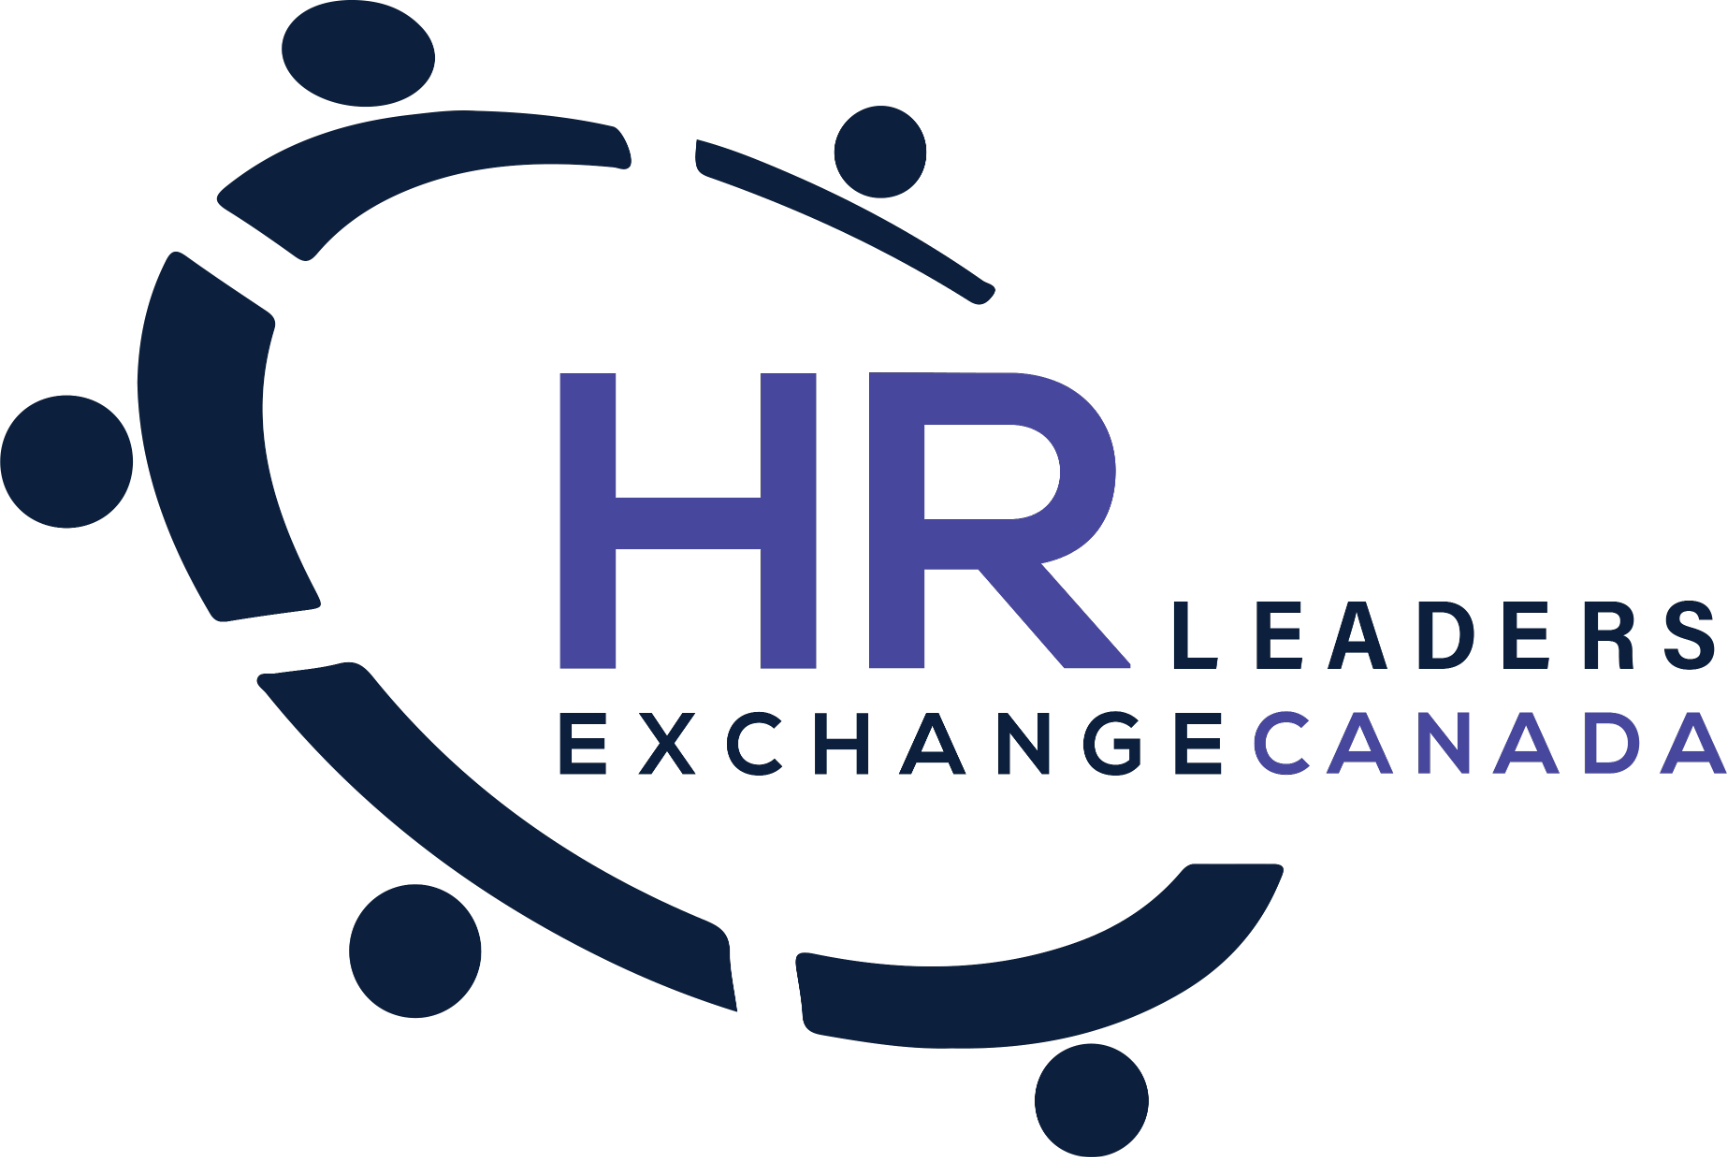 HR Leaders Exchange Canada